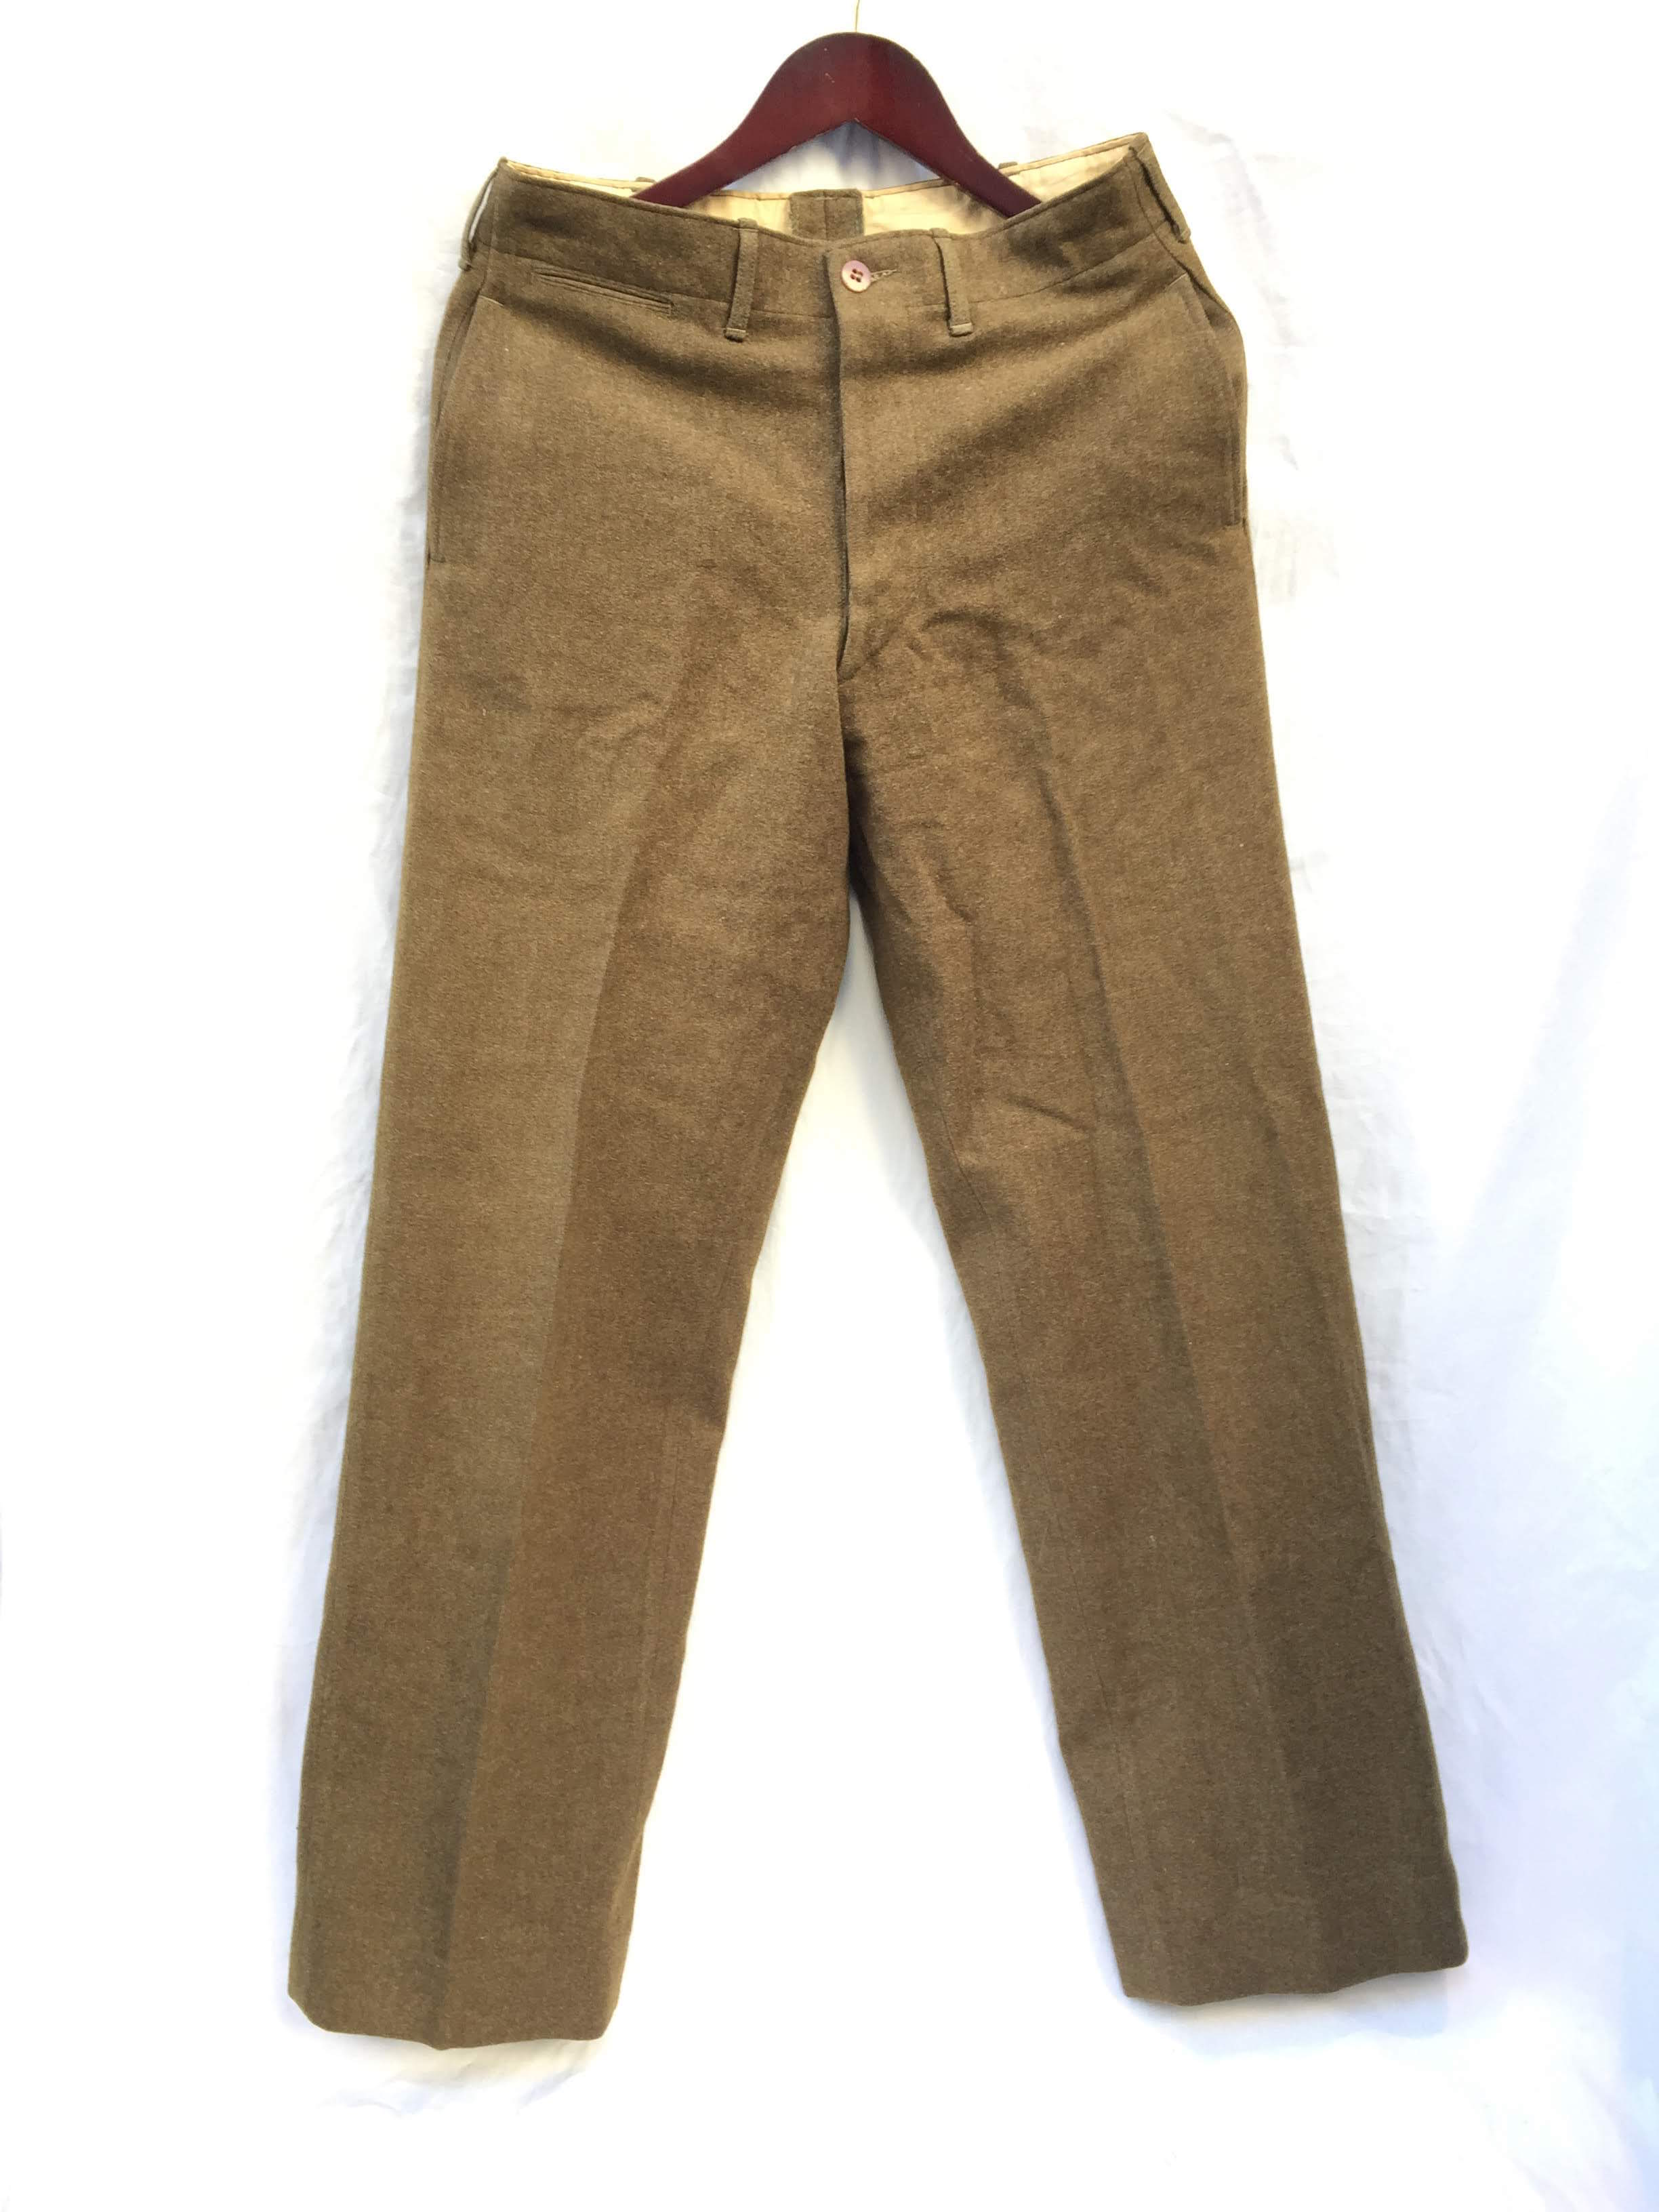 40's Vintage US Army Wool Trousers Good Condition